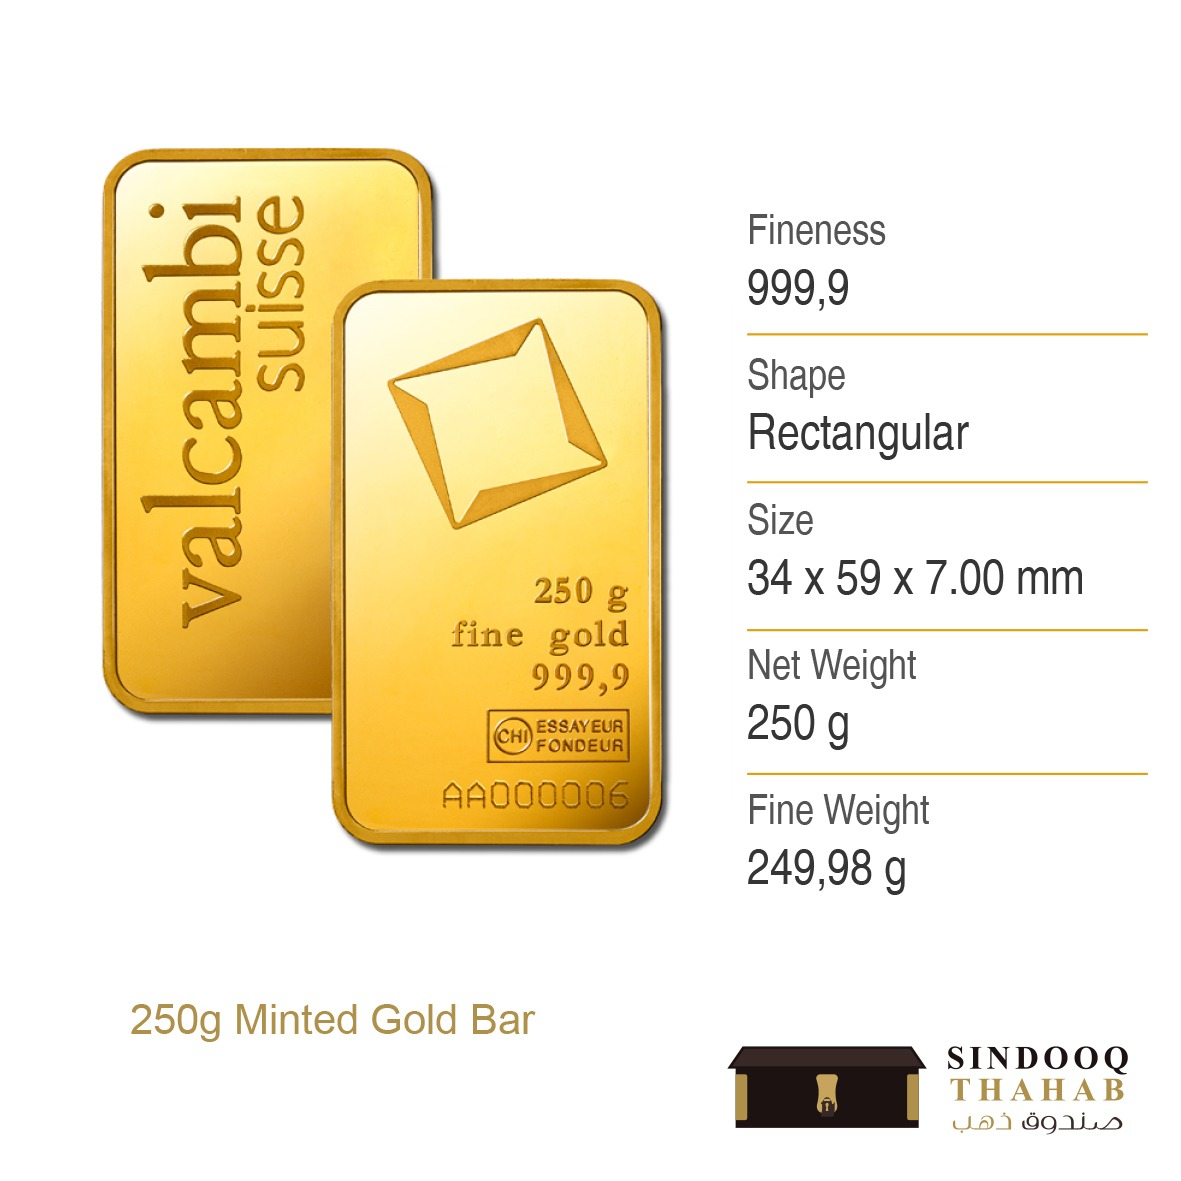 250g Minted Gold Bar